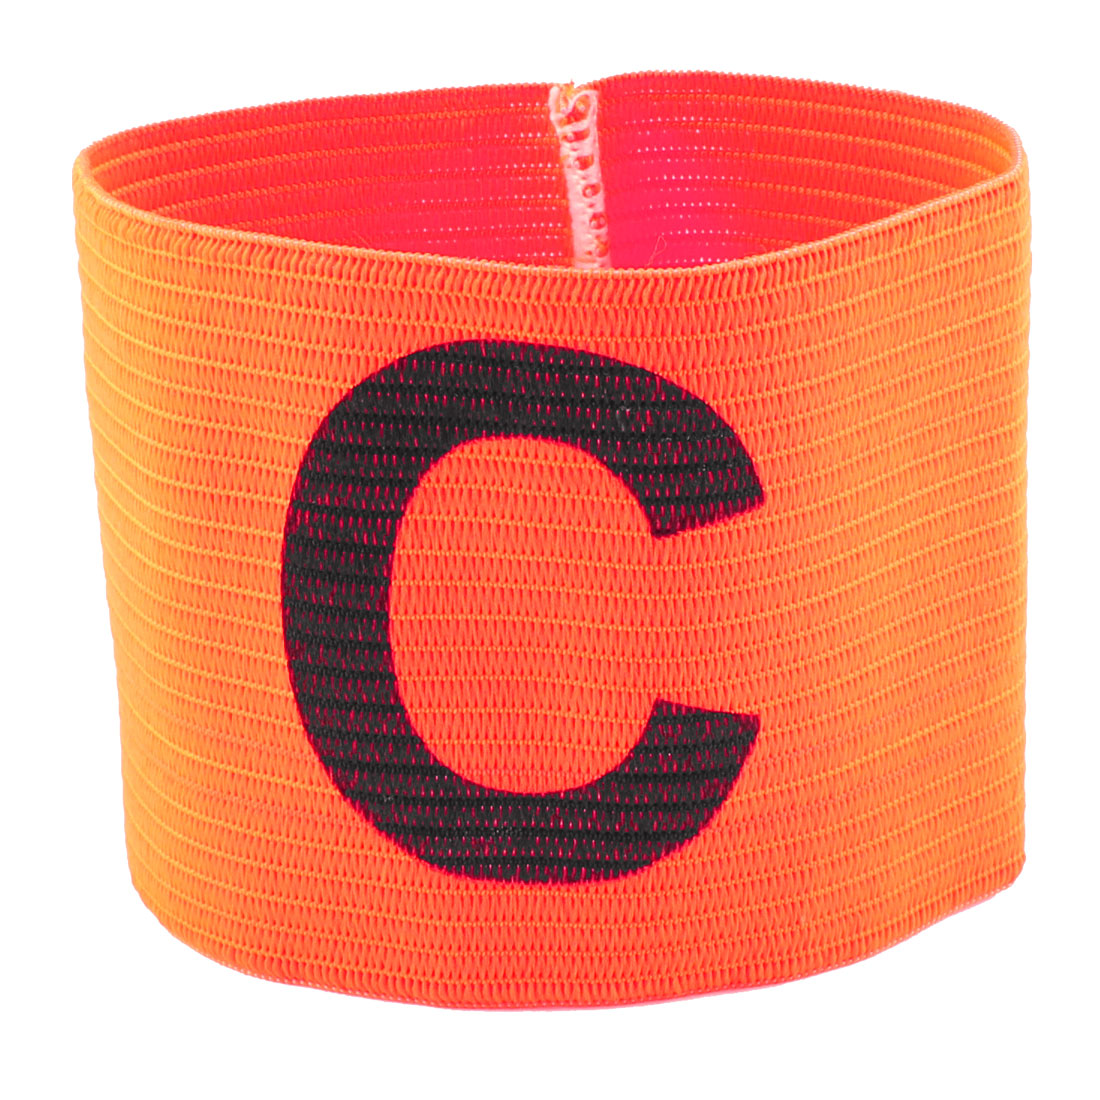 Letter C Printed Football Game Elastic Polyester Kapitnsbinde Orange Red